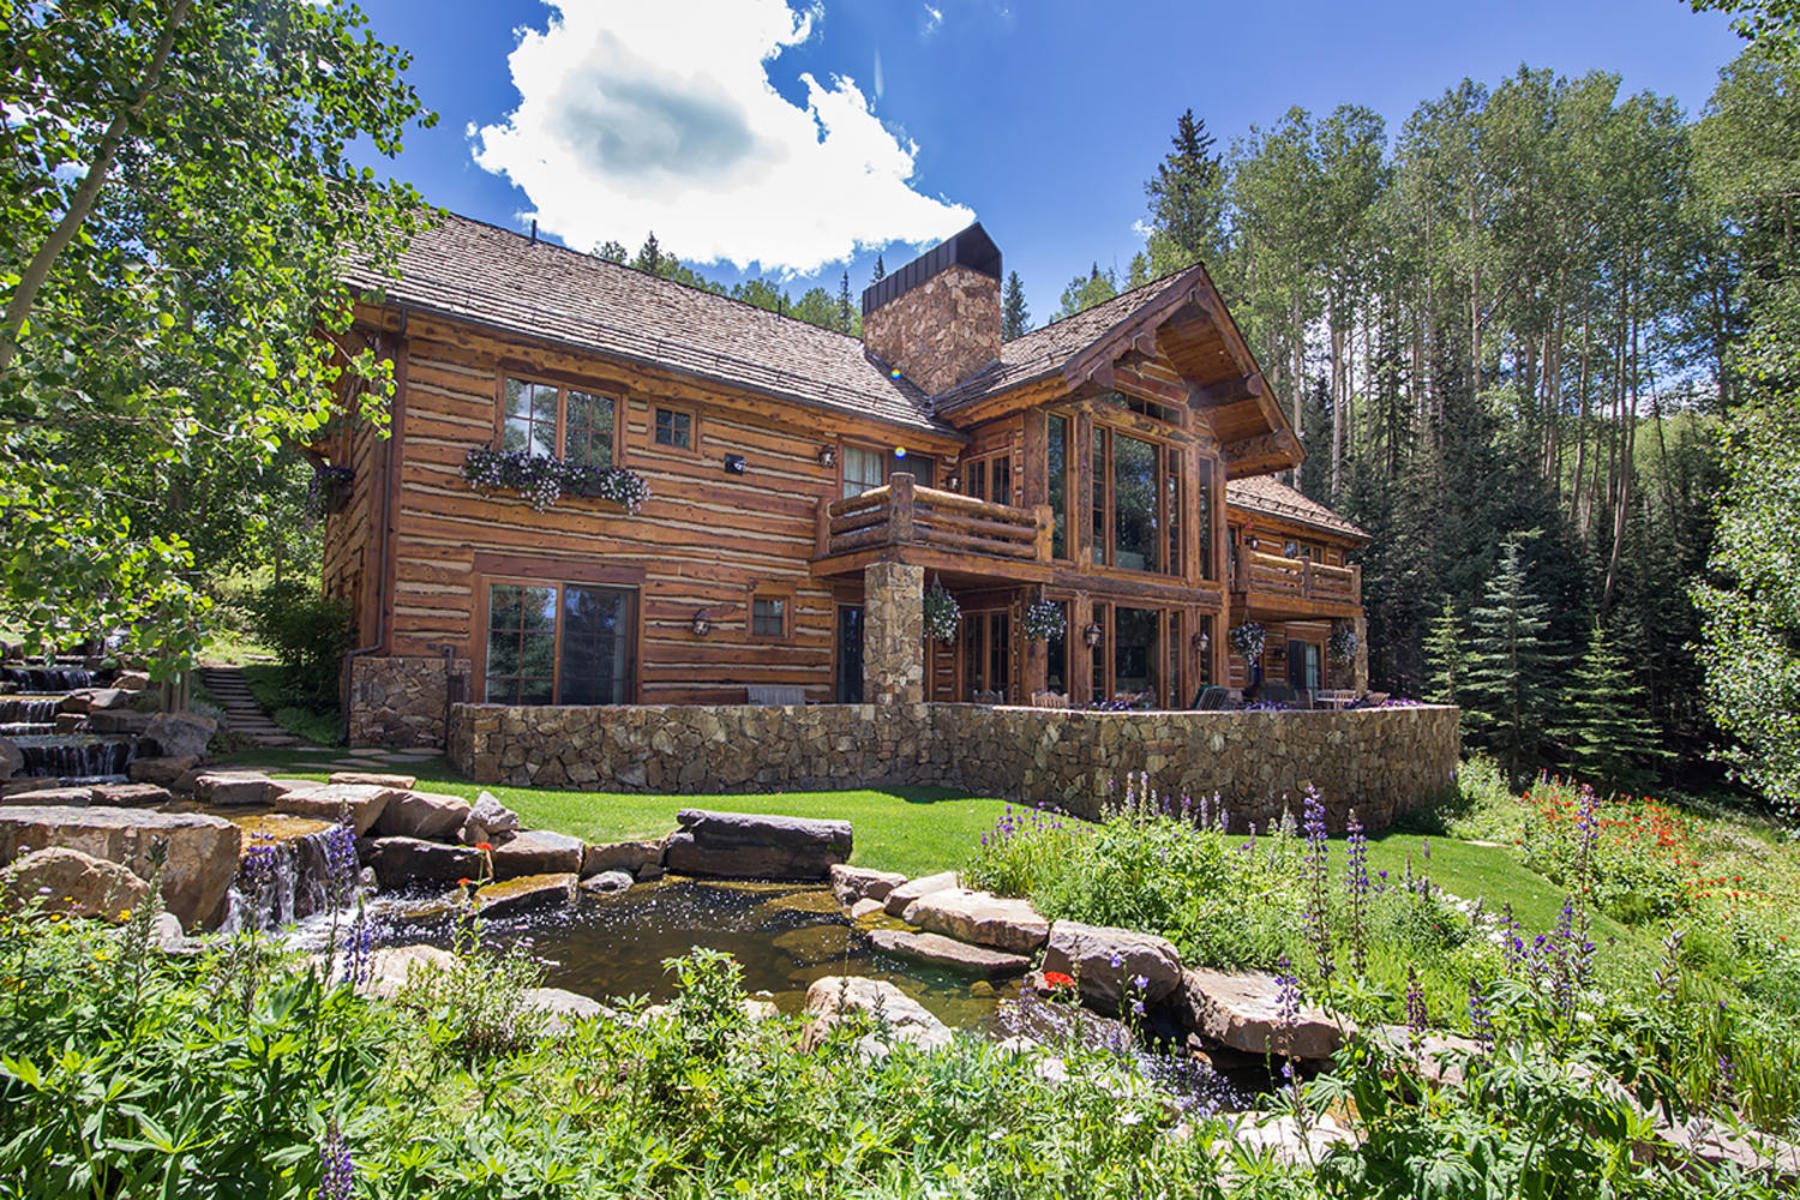 Single Family Homes for Sale at 101 Rocky Road Mountain Village, Colorado 81435 United States